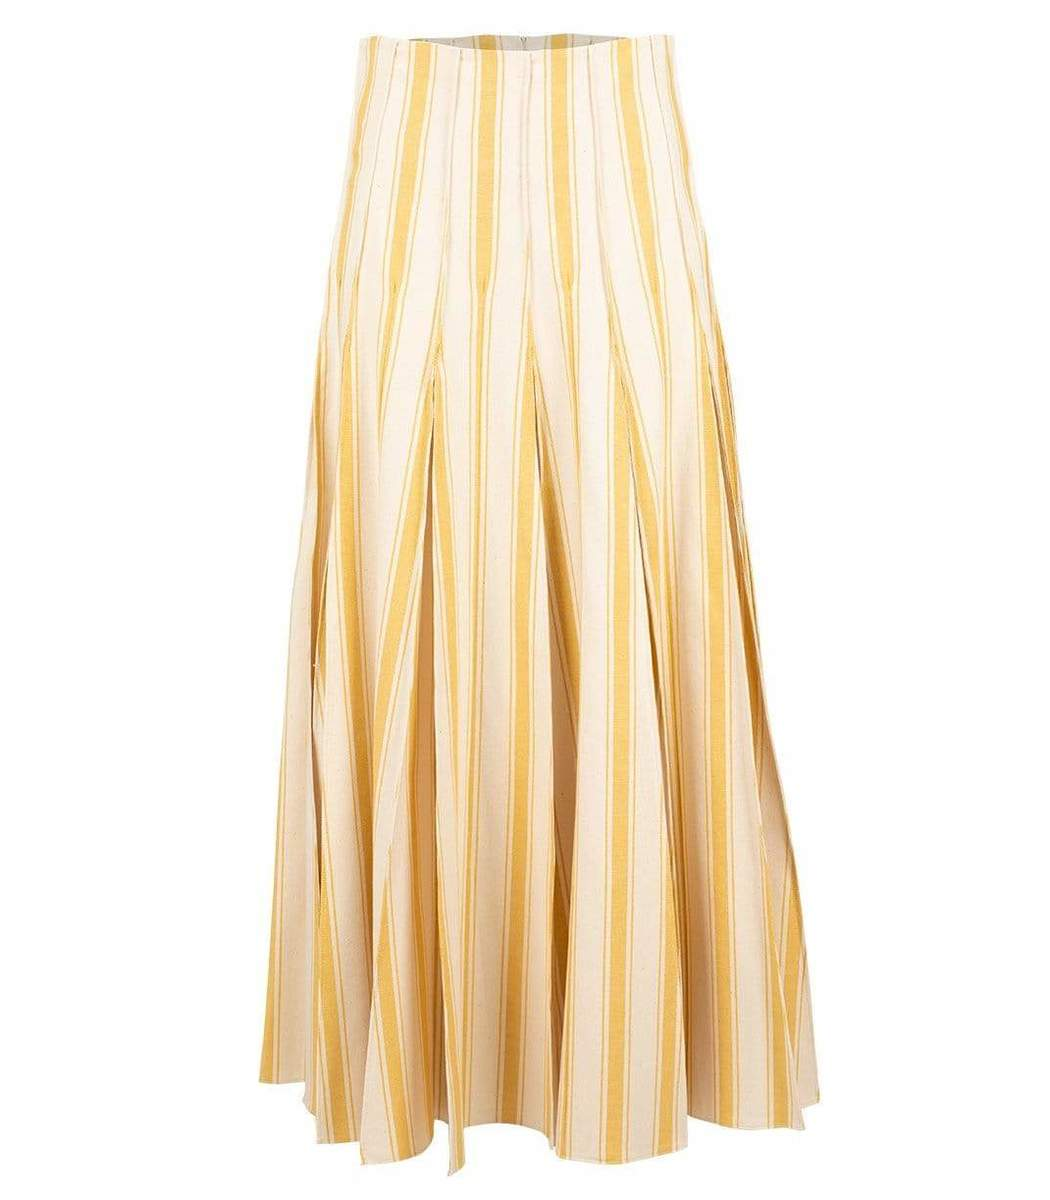 Rosie Assoulin Yellow and White Million Pleats Maxi Skirt